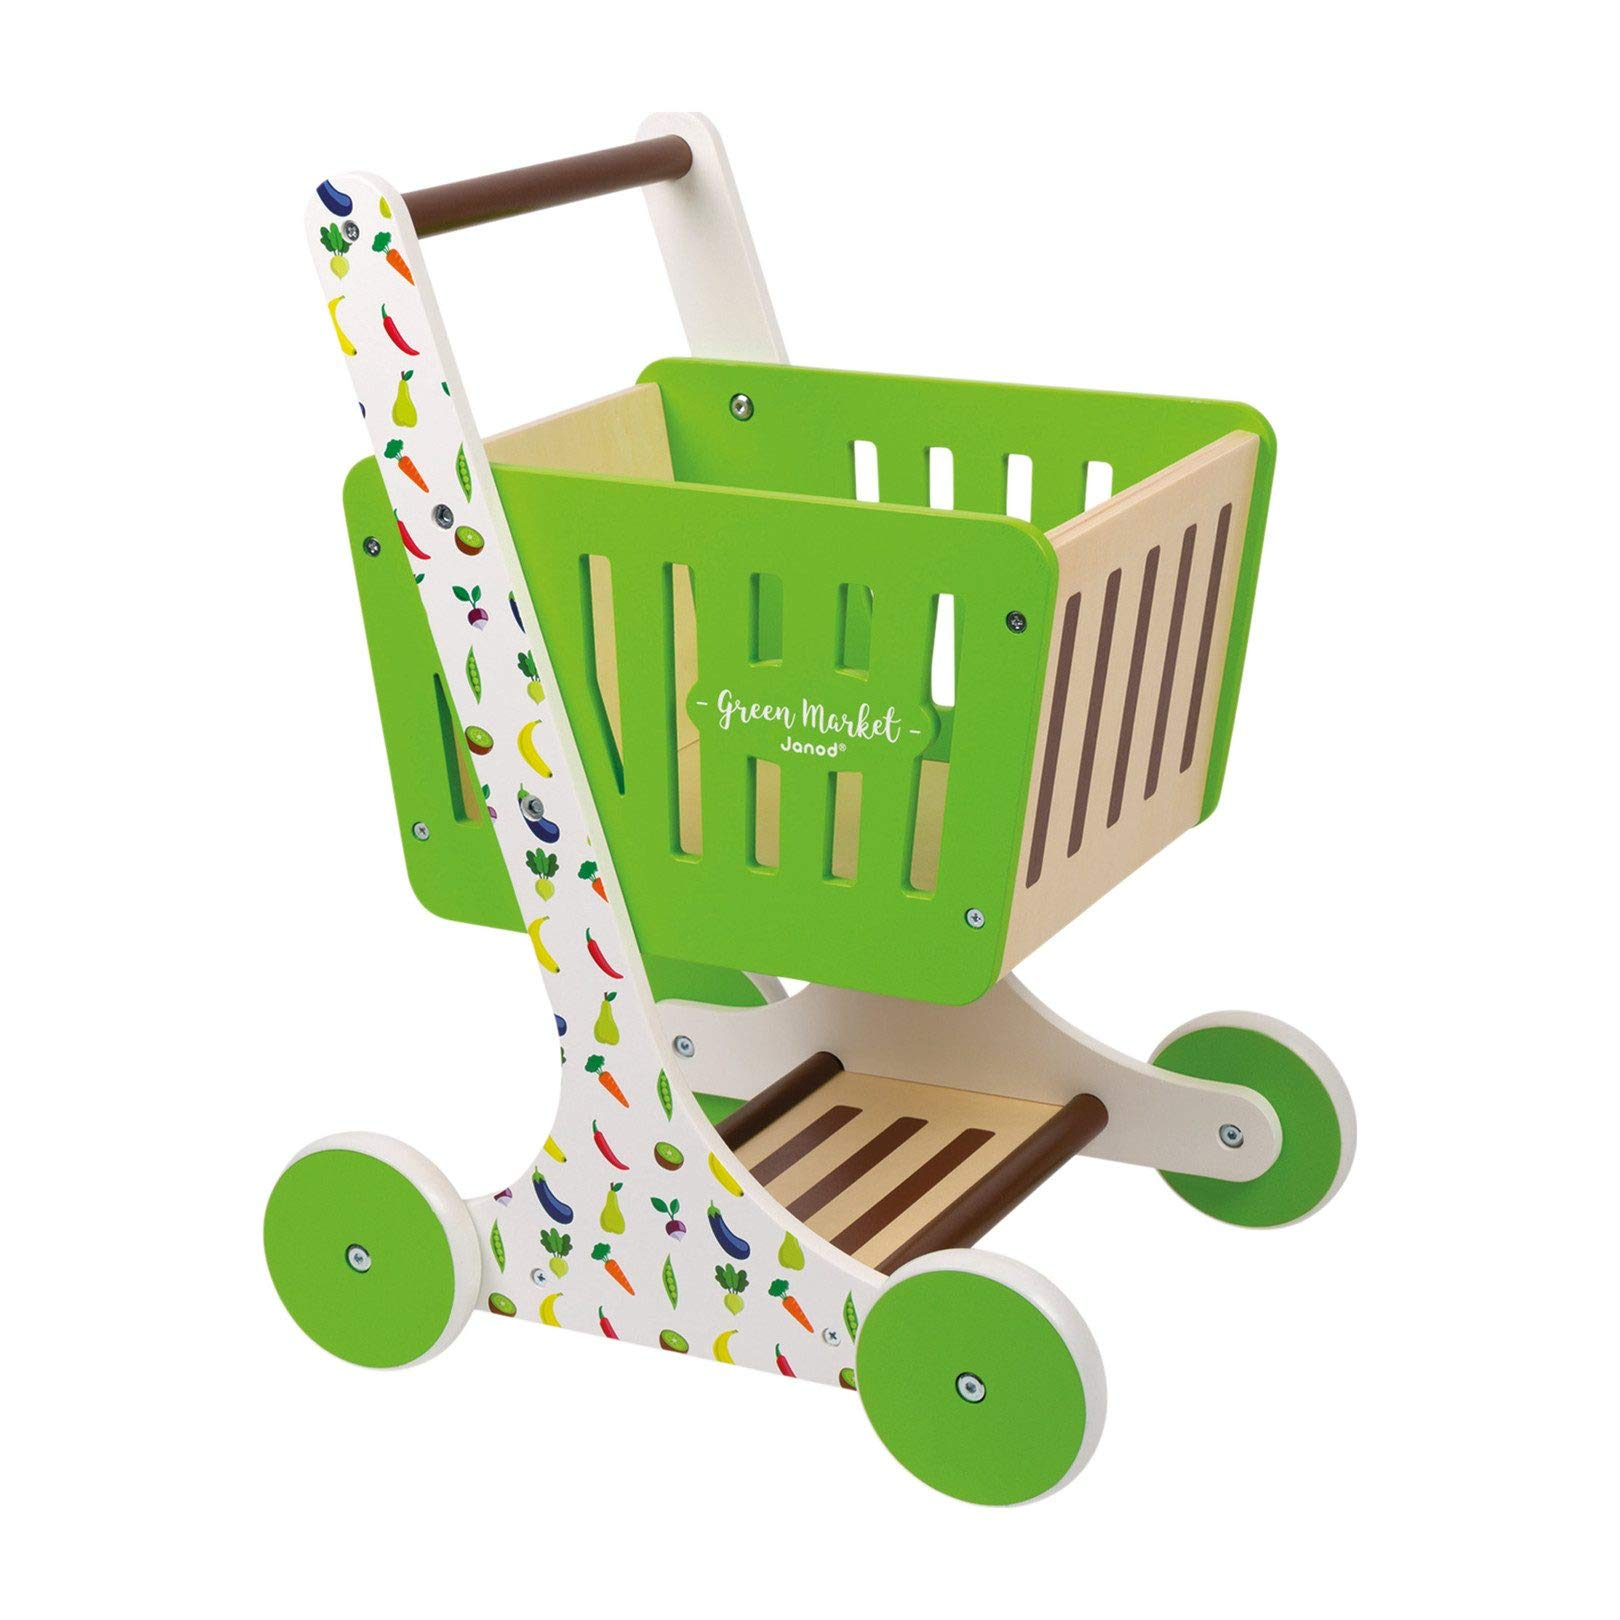 Janod Green Market Wooden Shopping Trolley with Grocery Accessories by Janod